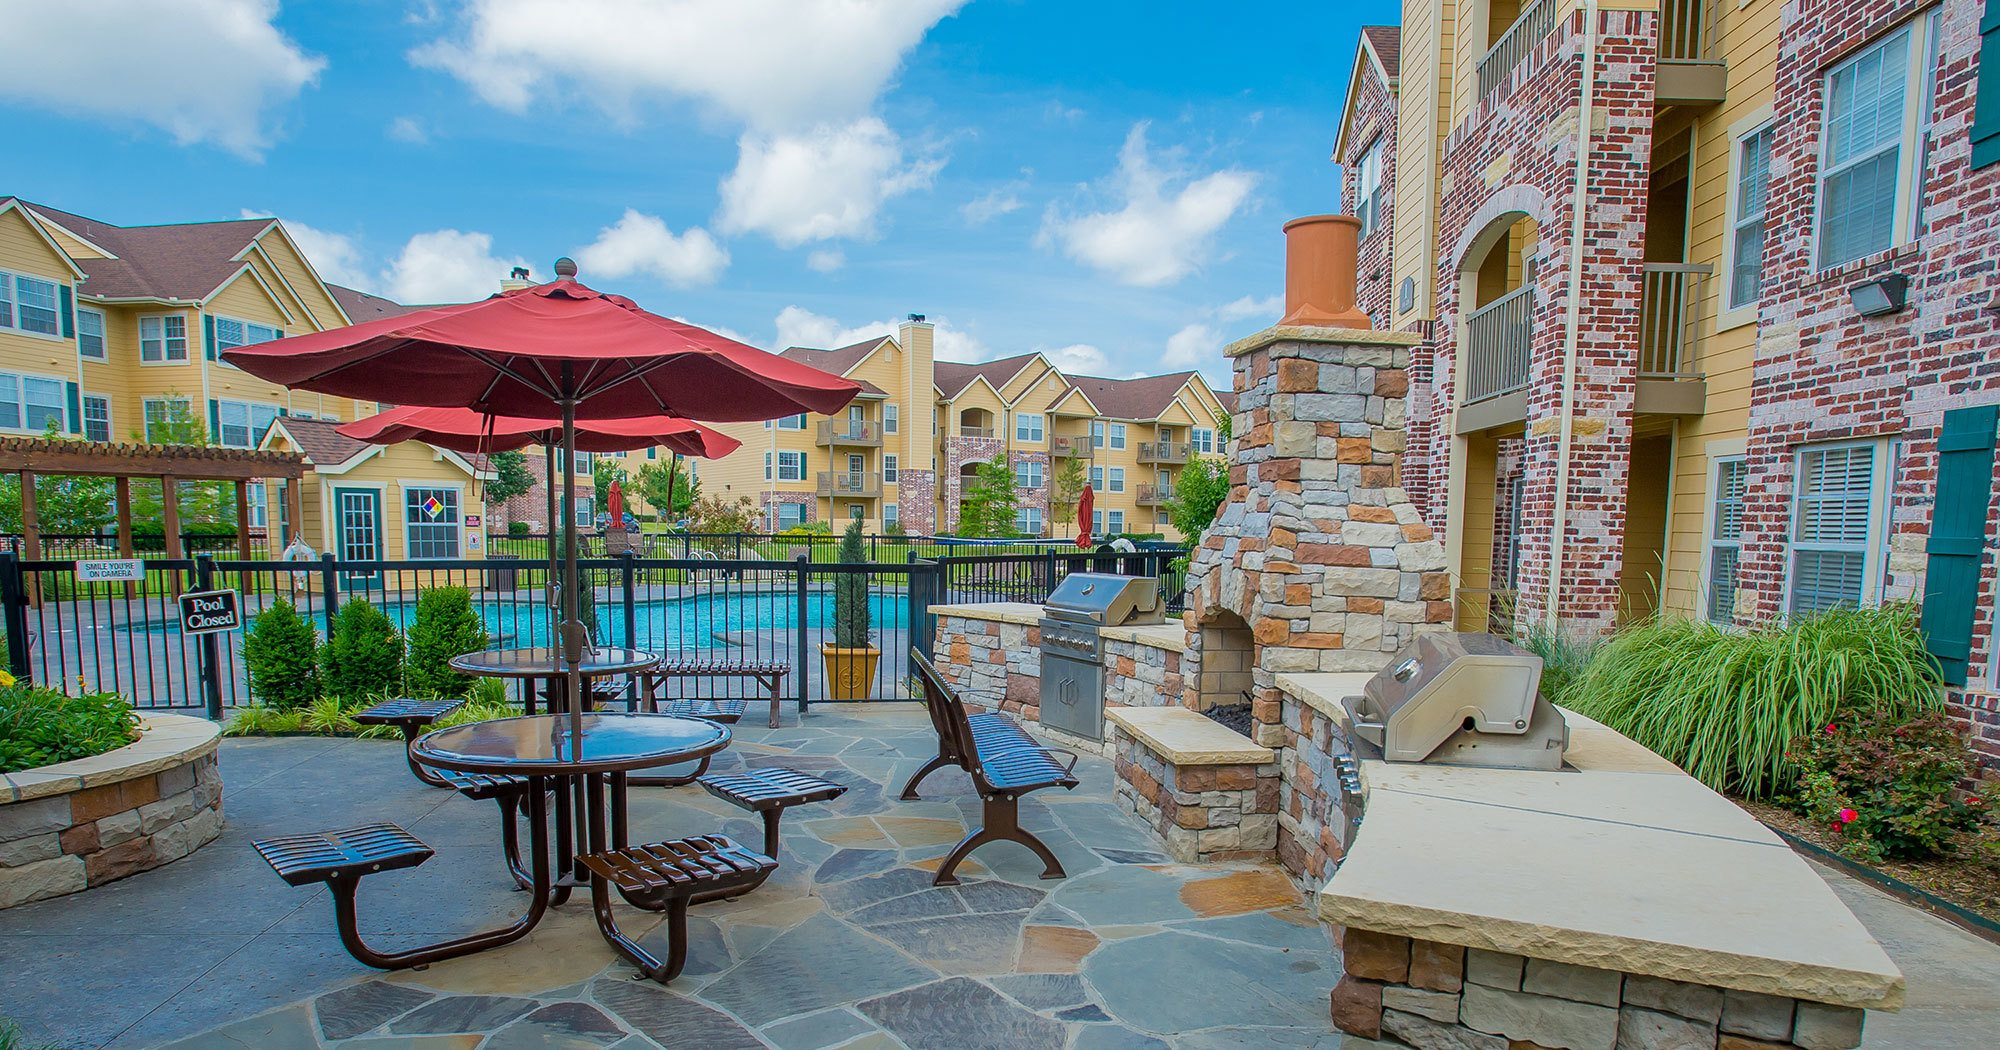 Swimming pool view at apartments in Broken Arrow